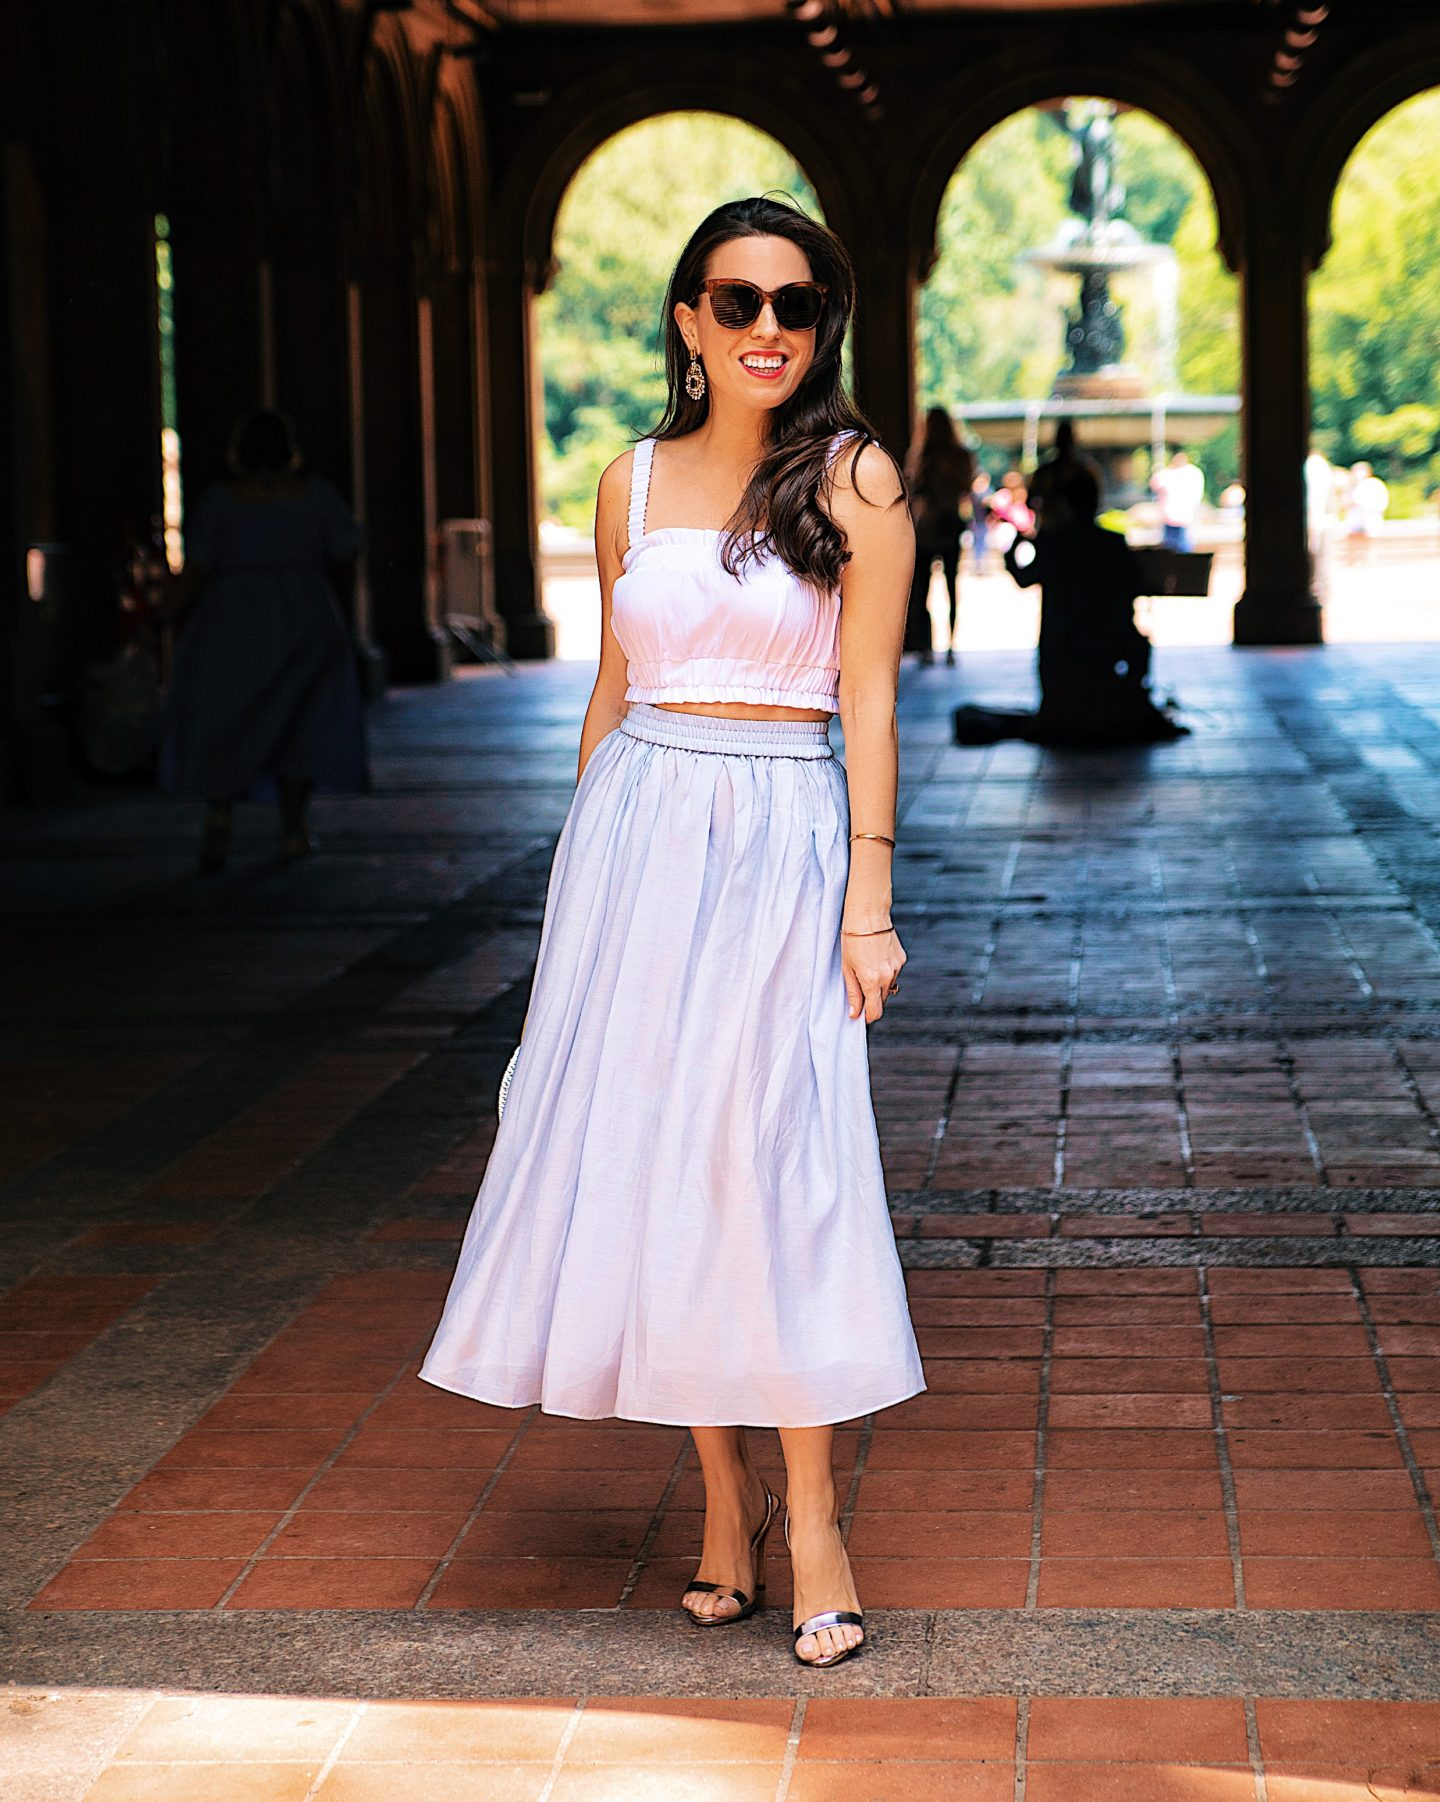 h&m midi skirt and crop top